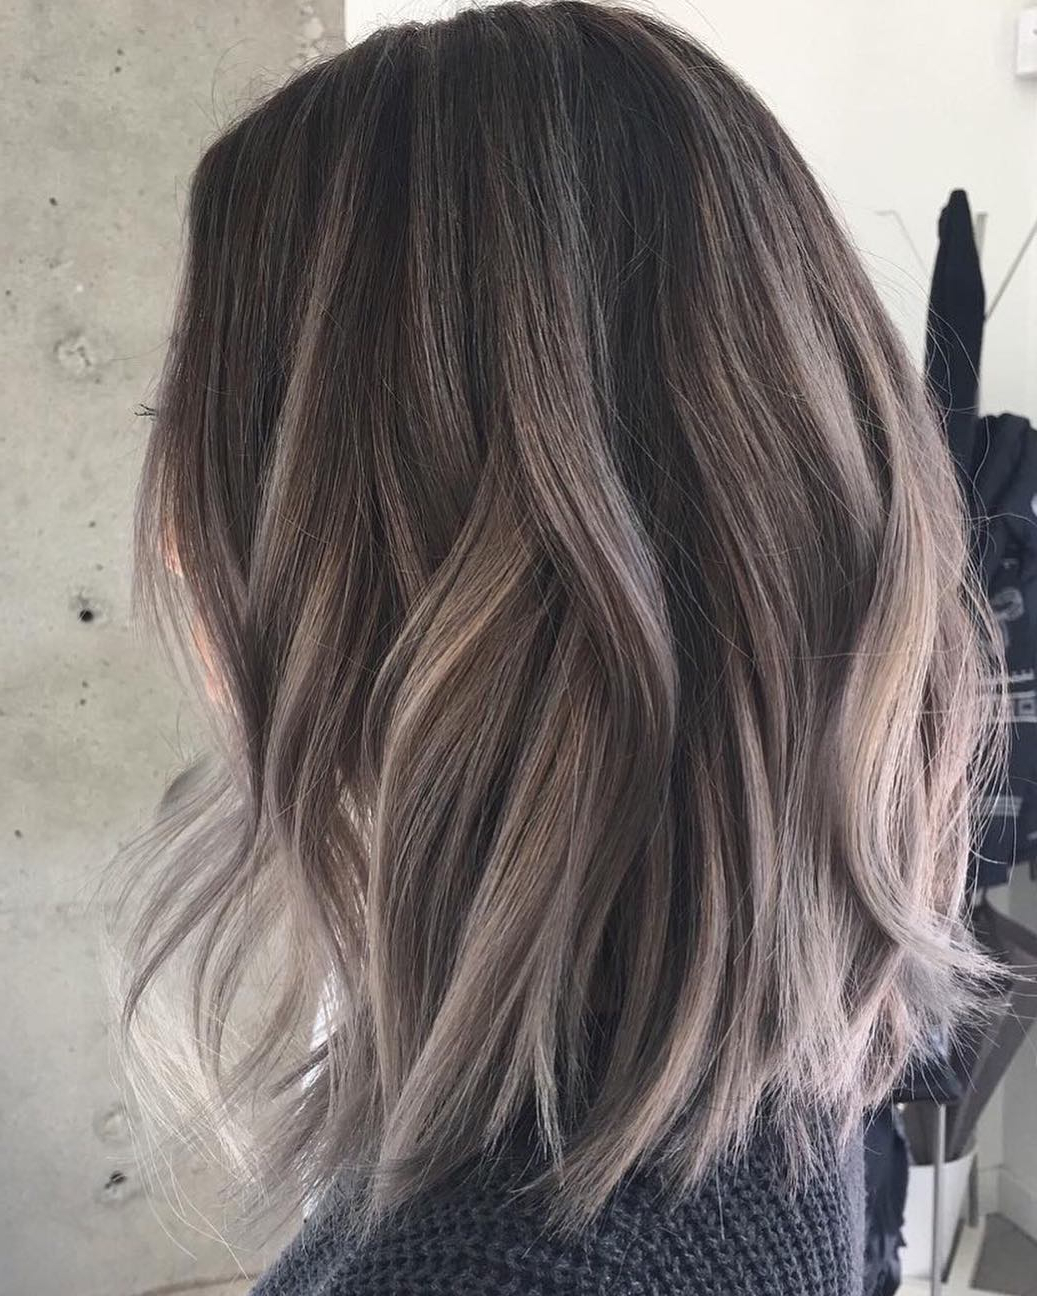 10 Medium Length Hair Color Ideas 2019 Pertaining To Widely Used Pinks Medium Haircuts (View 7 of 20)